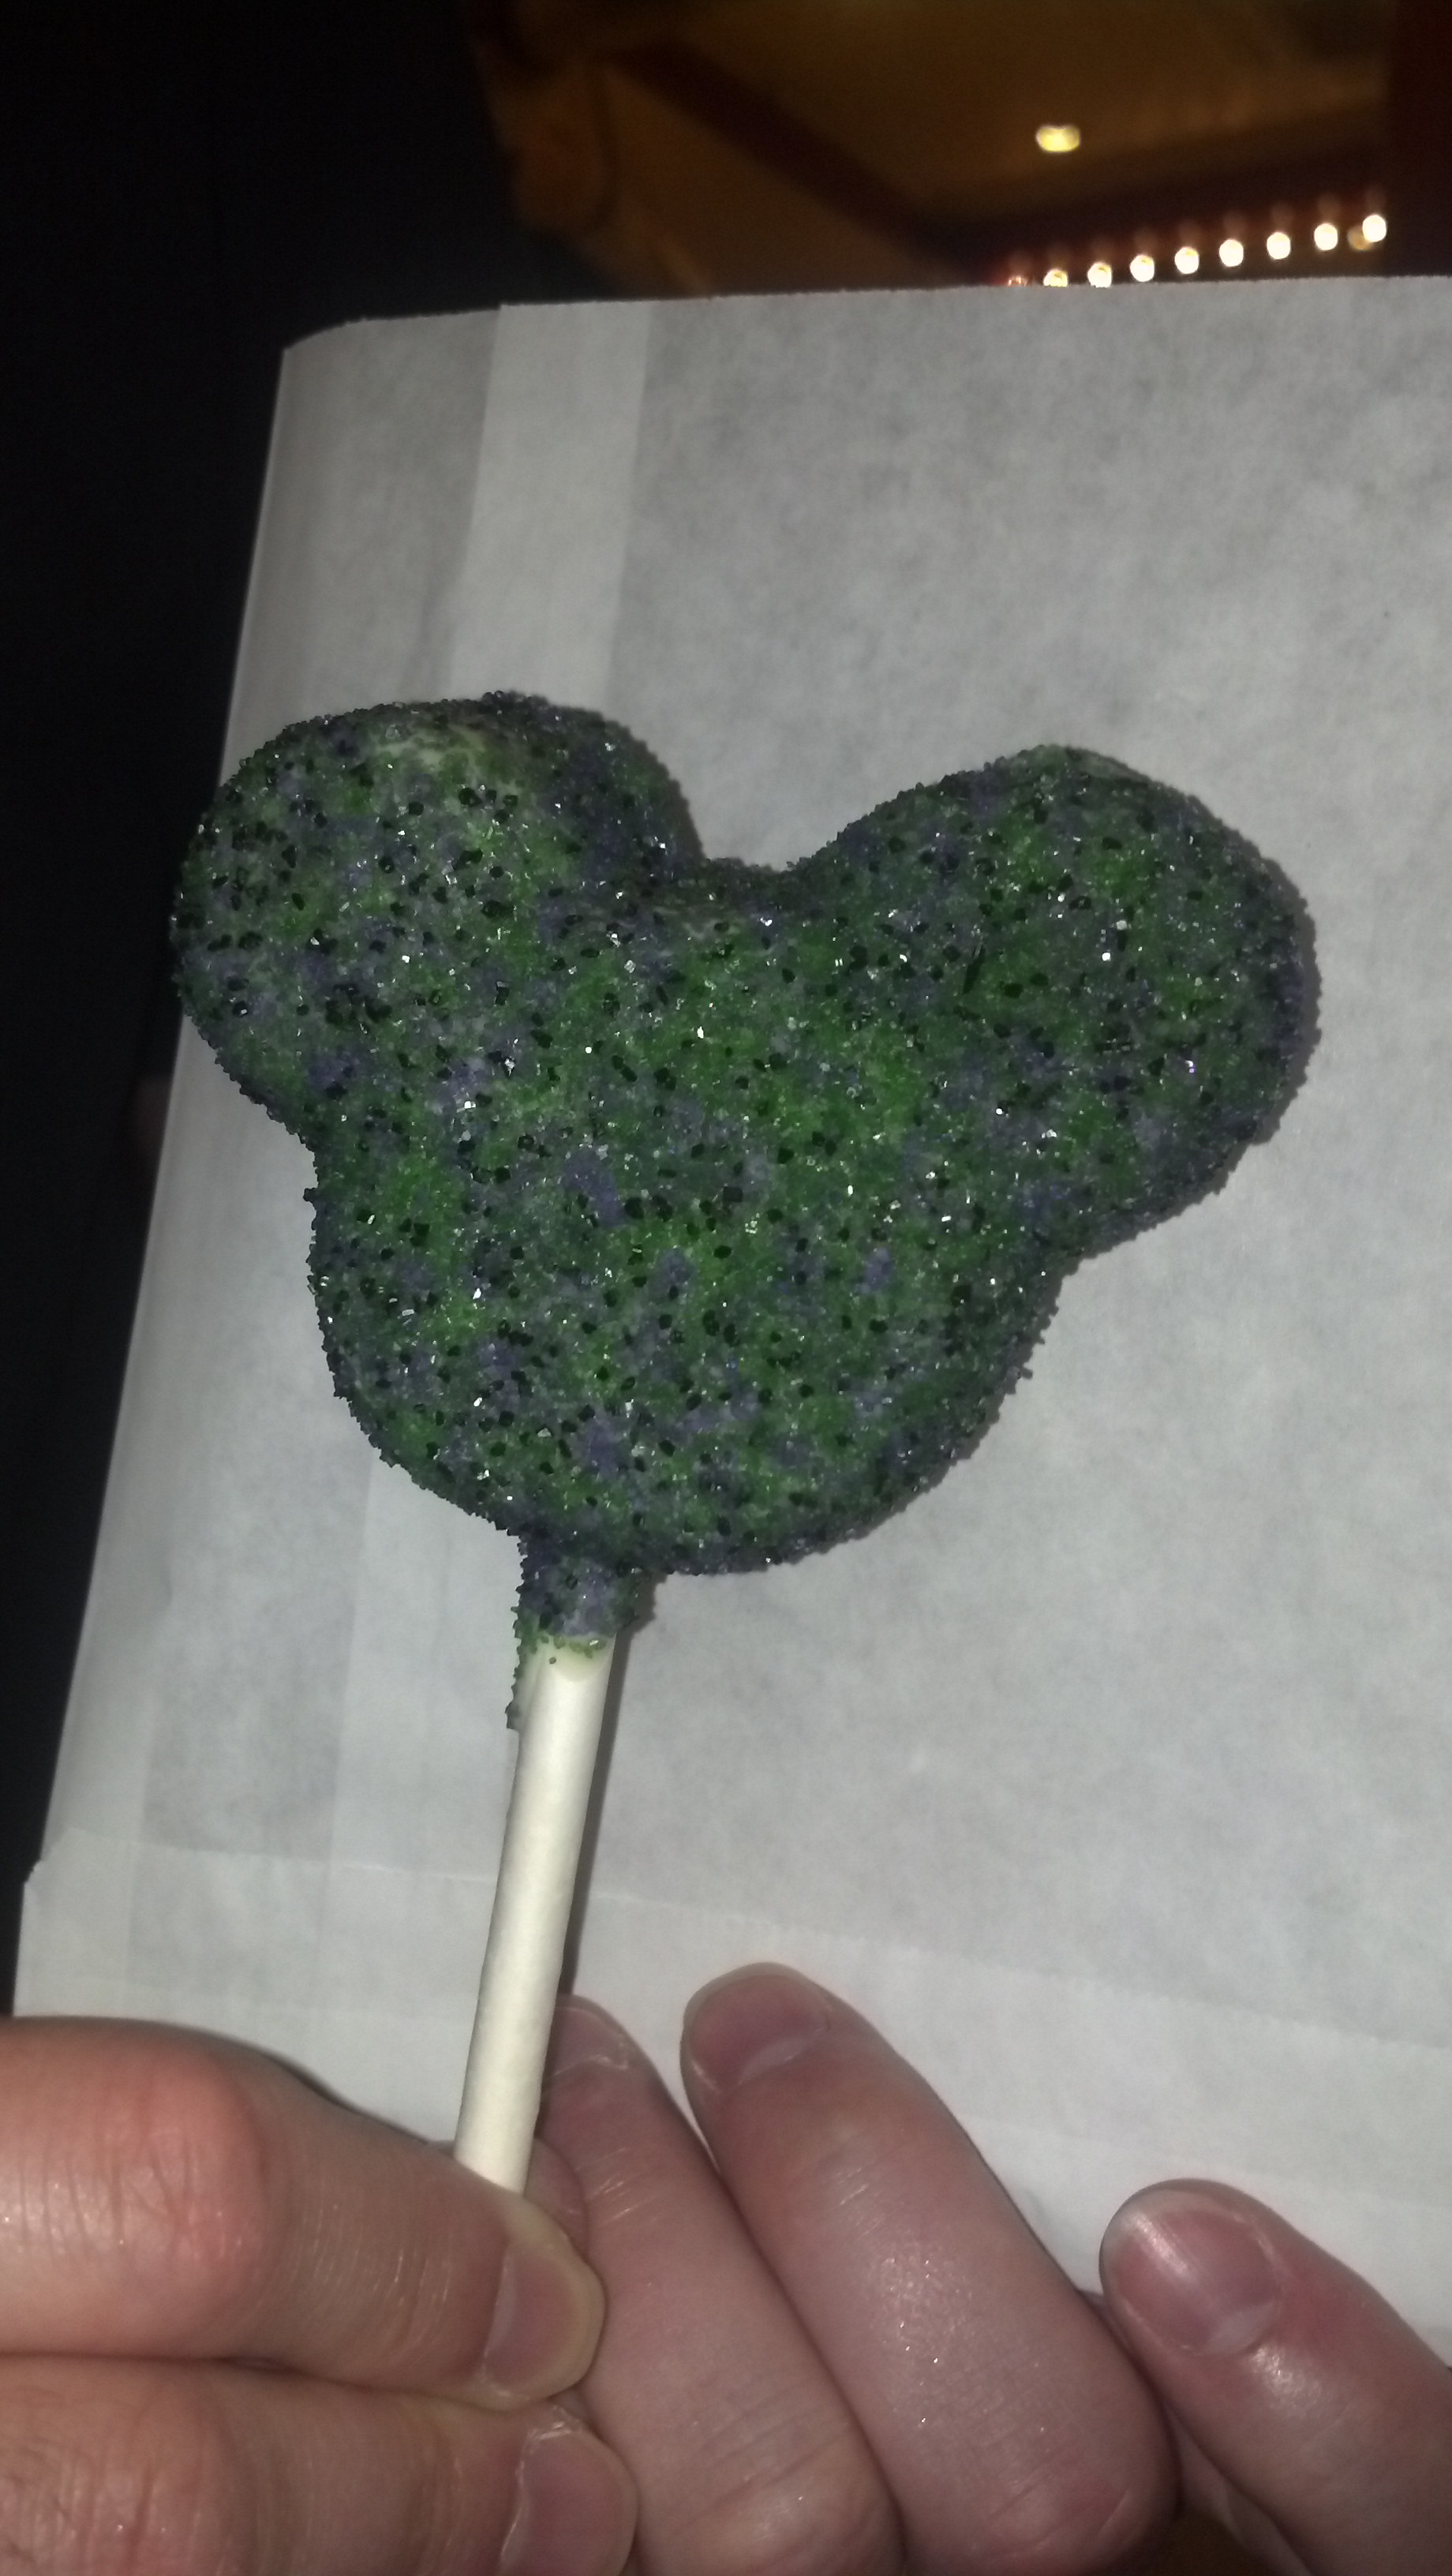 Green, Black, and Purple Maleficient Cake Pops